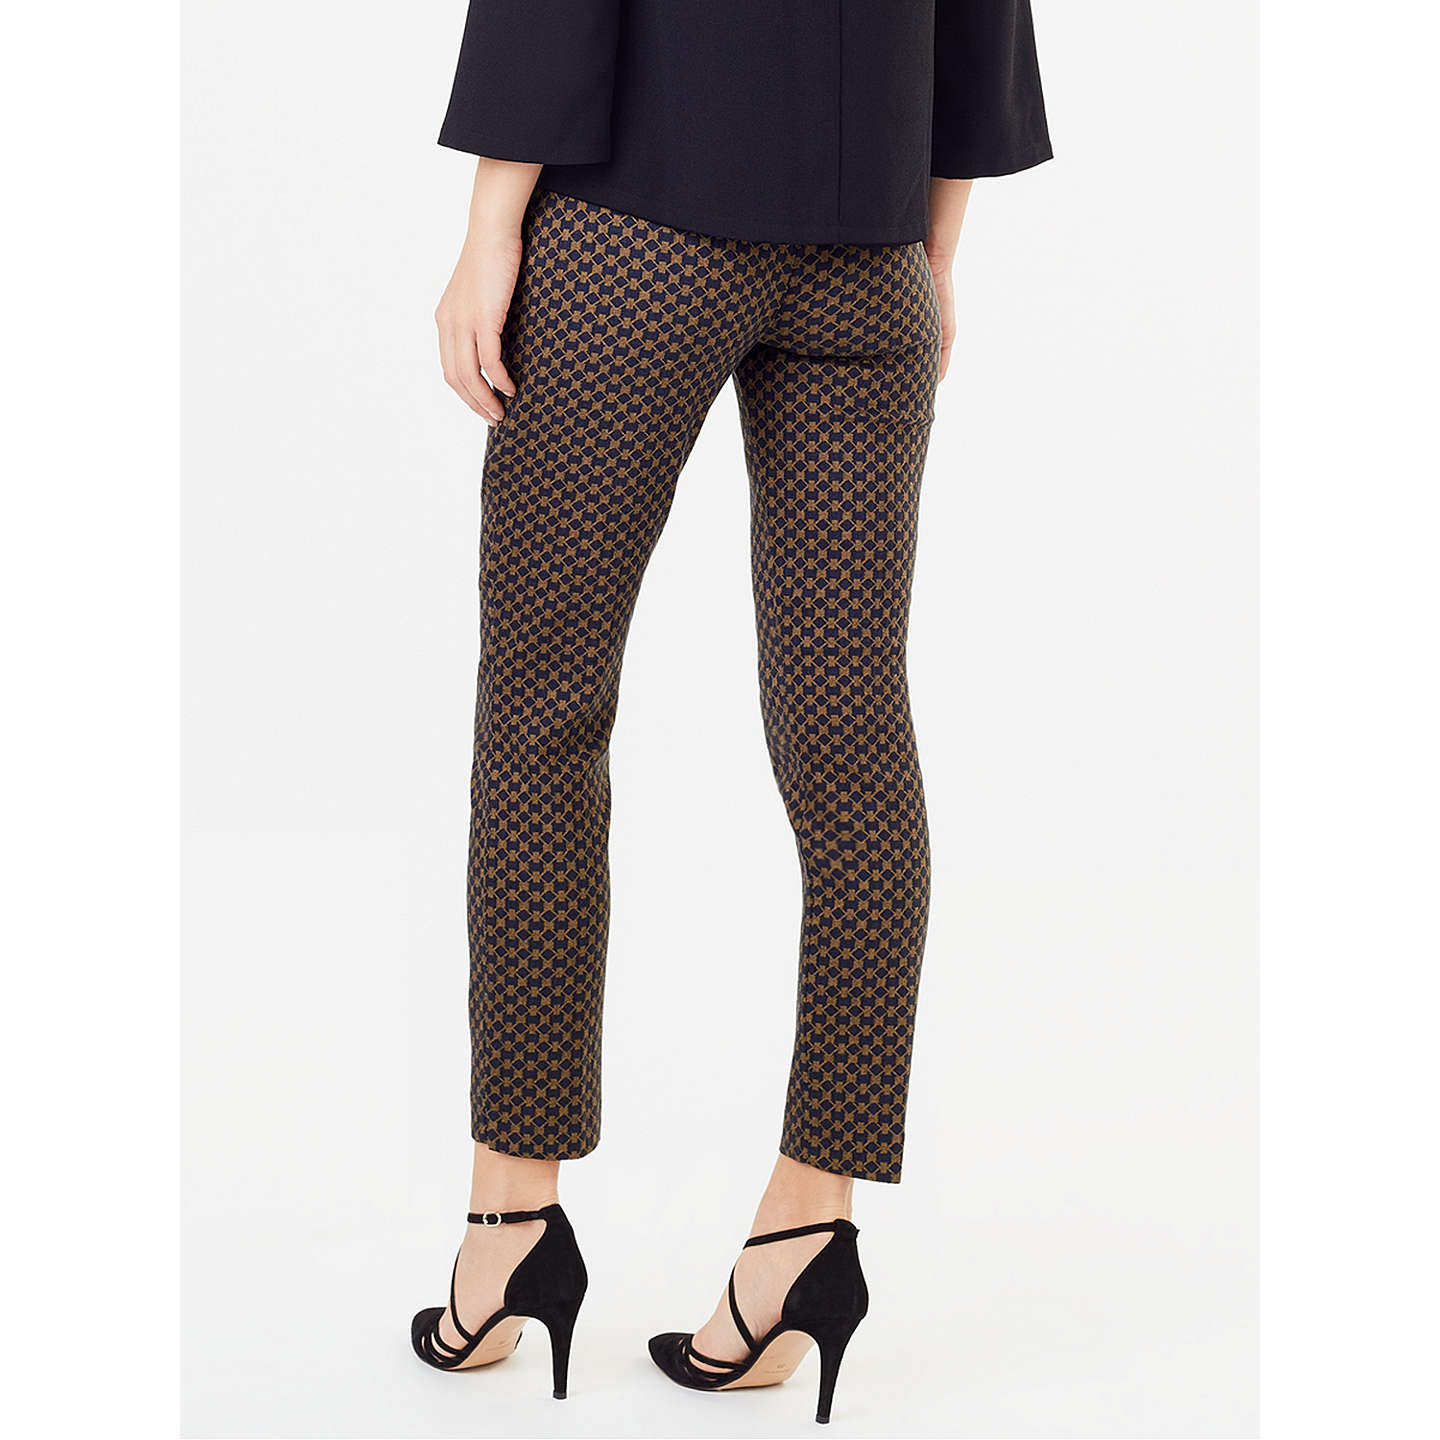 BuyPhase Eight Erica Trellis Jacquard Trousers, Midnight/Tobacco, 8 Online at johnlewis.com